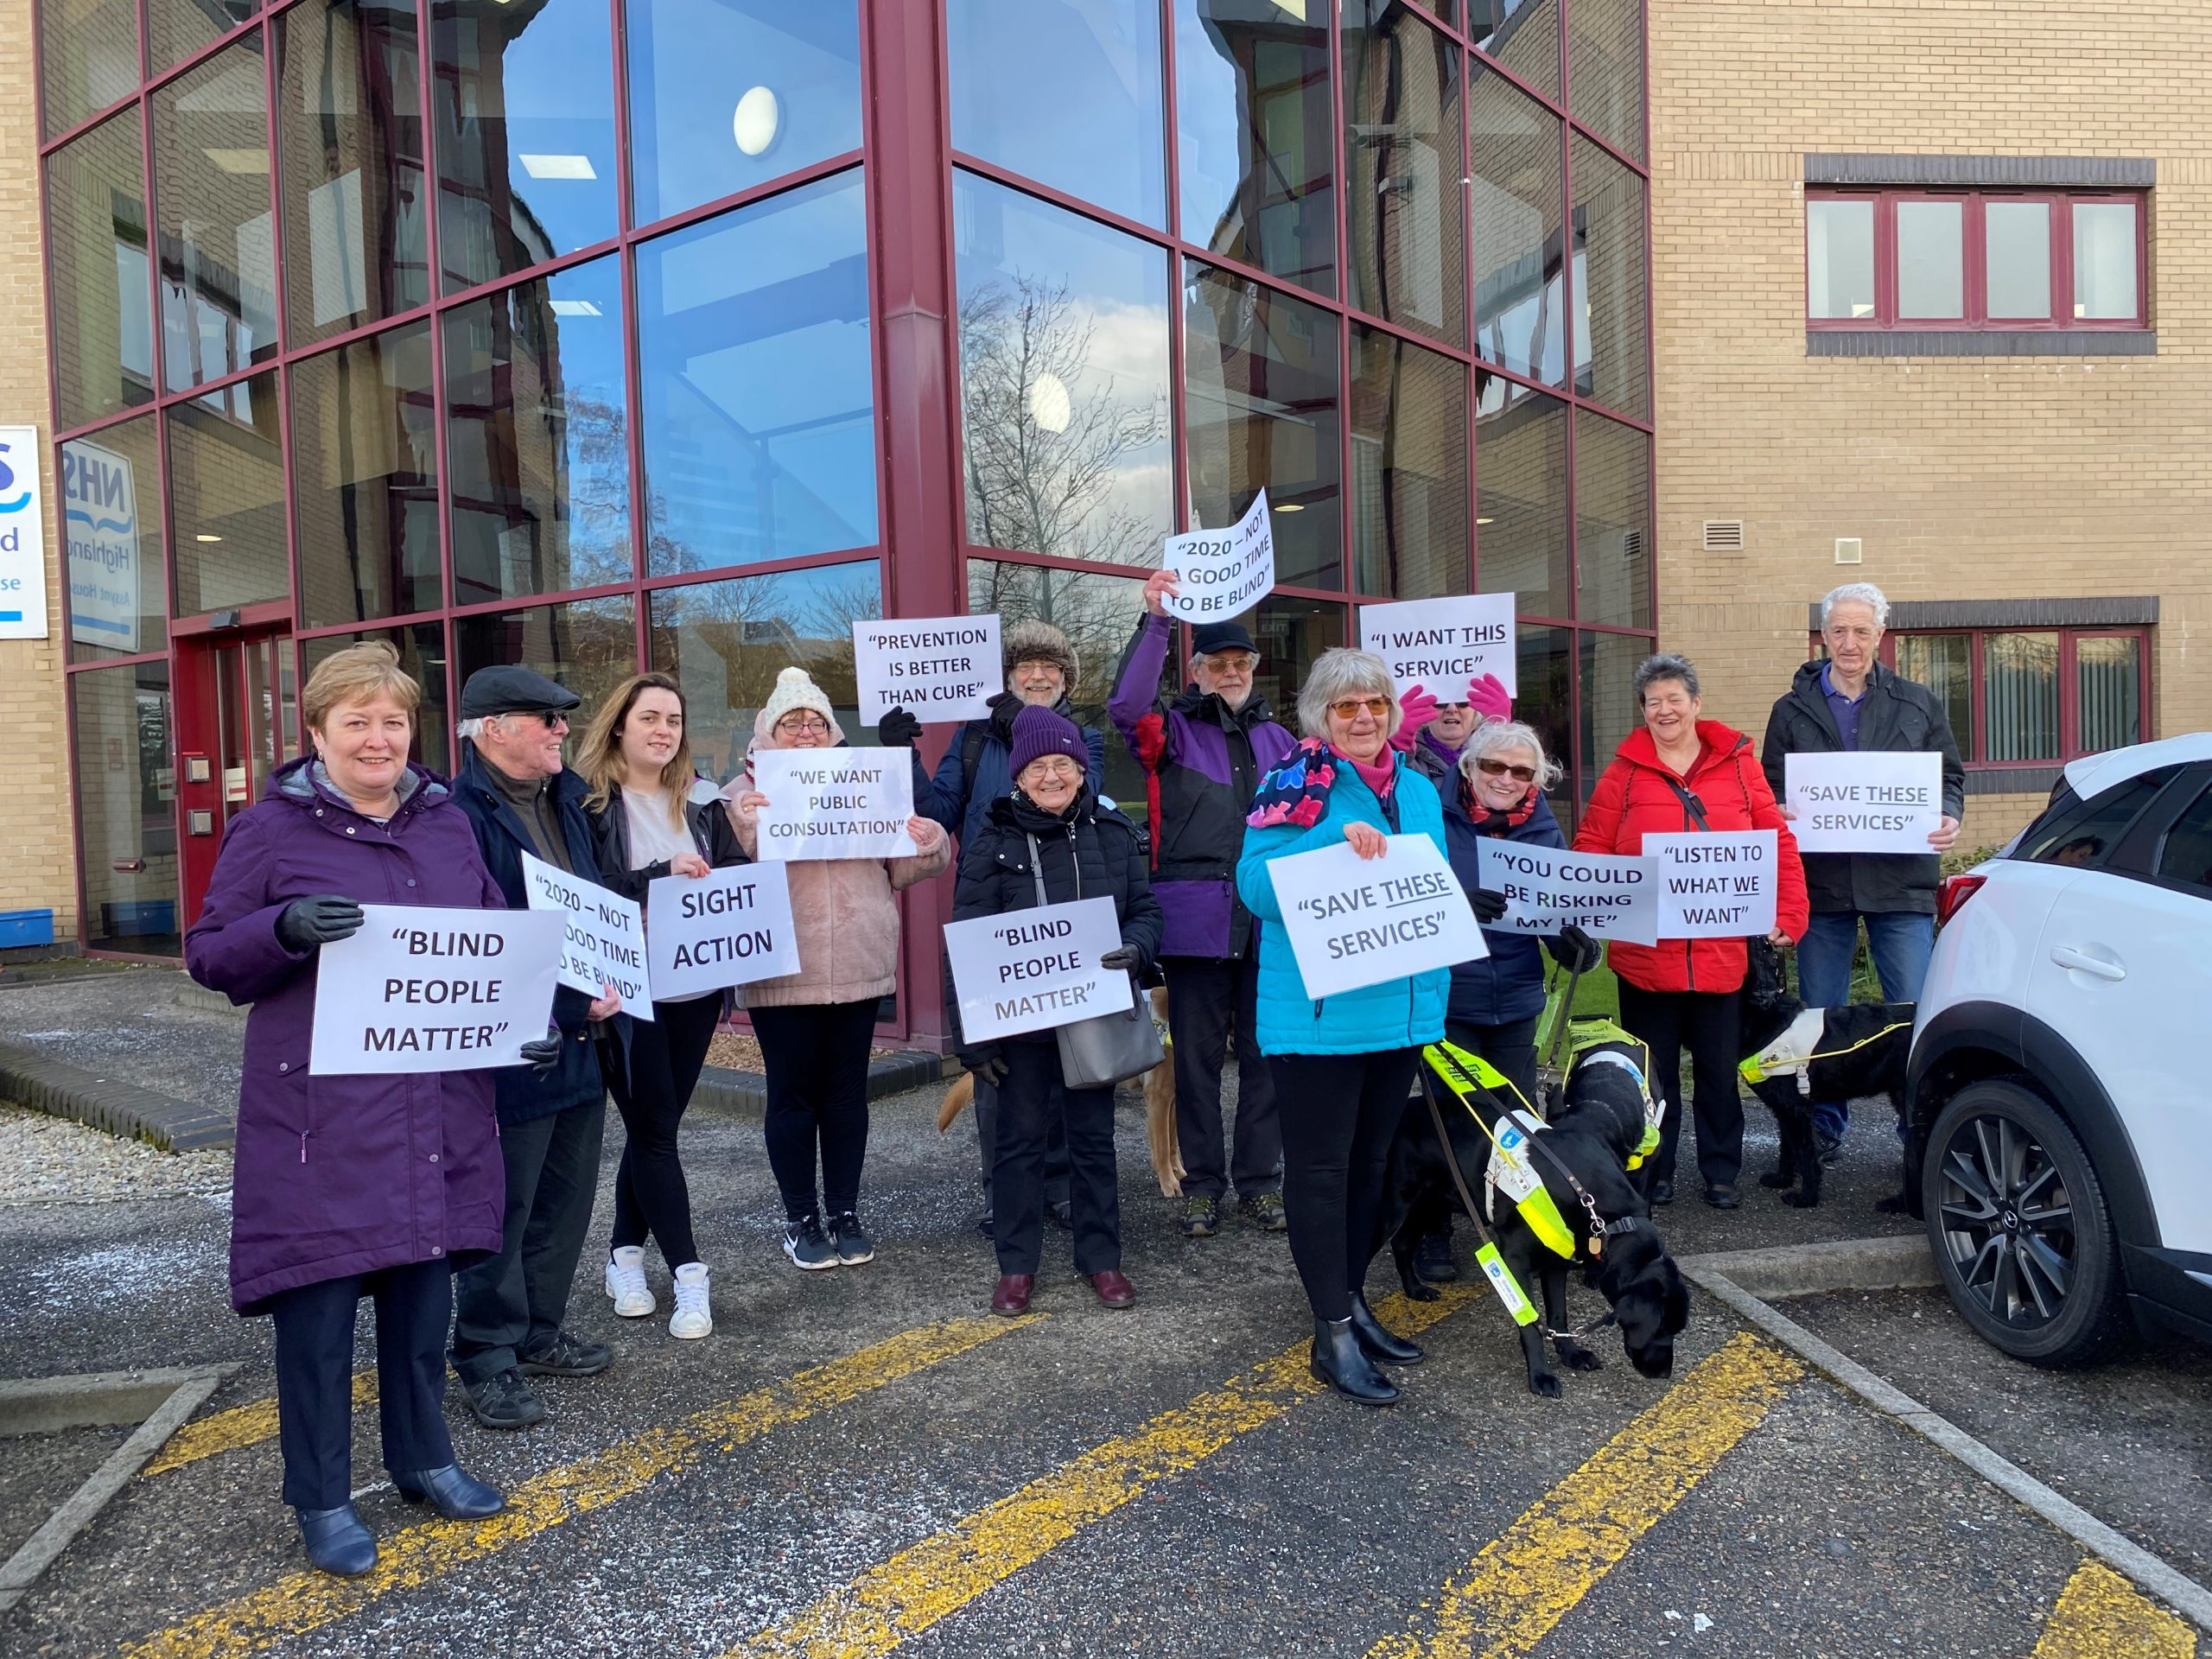 Highlands and Islands MSP Rhoda Grant joined the campaigners outside Assynt House last week